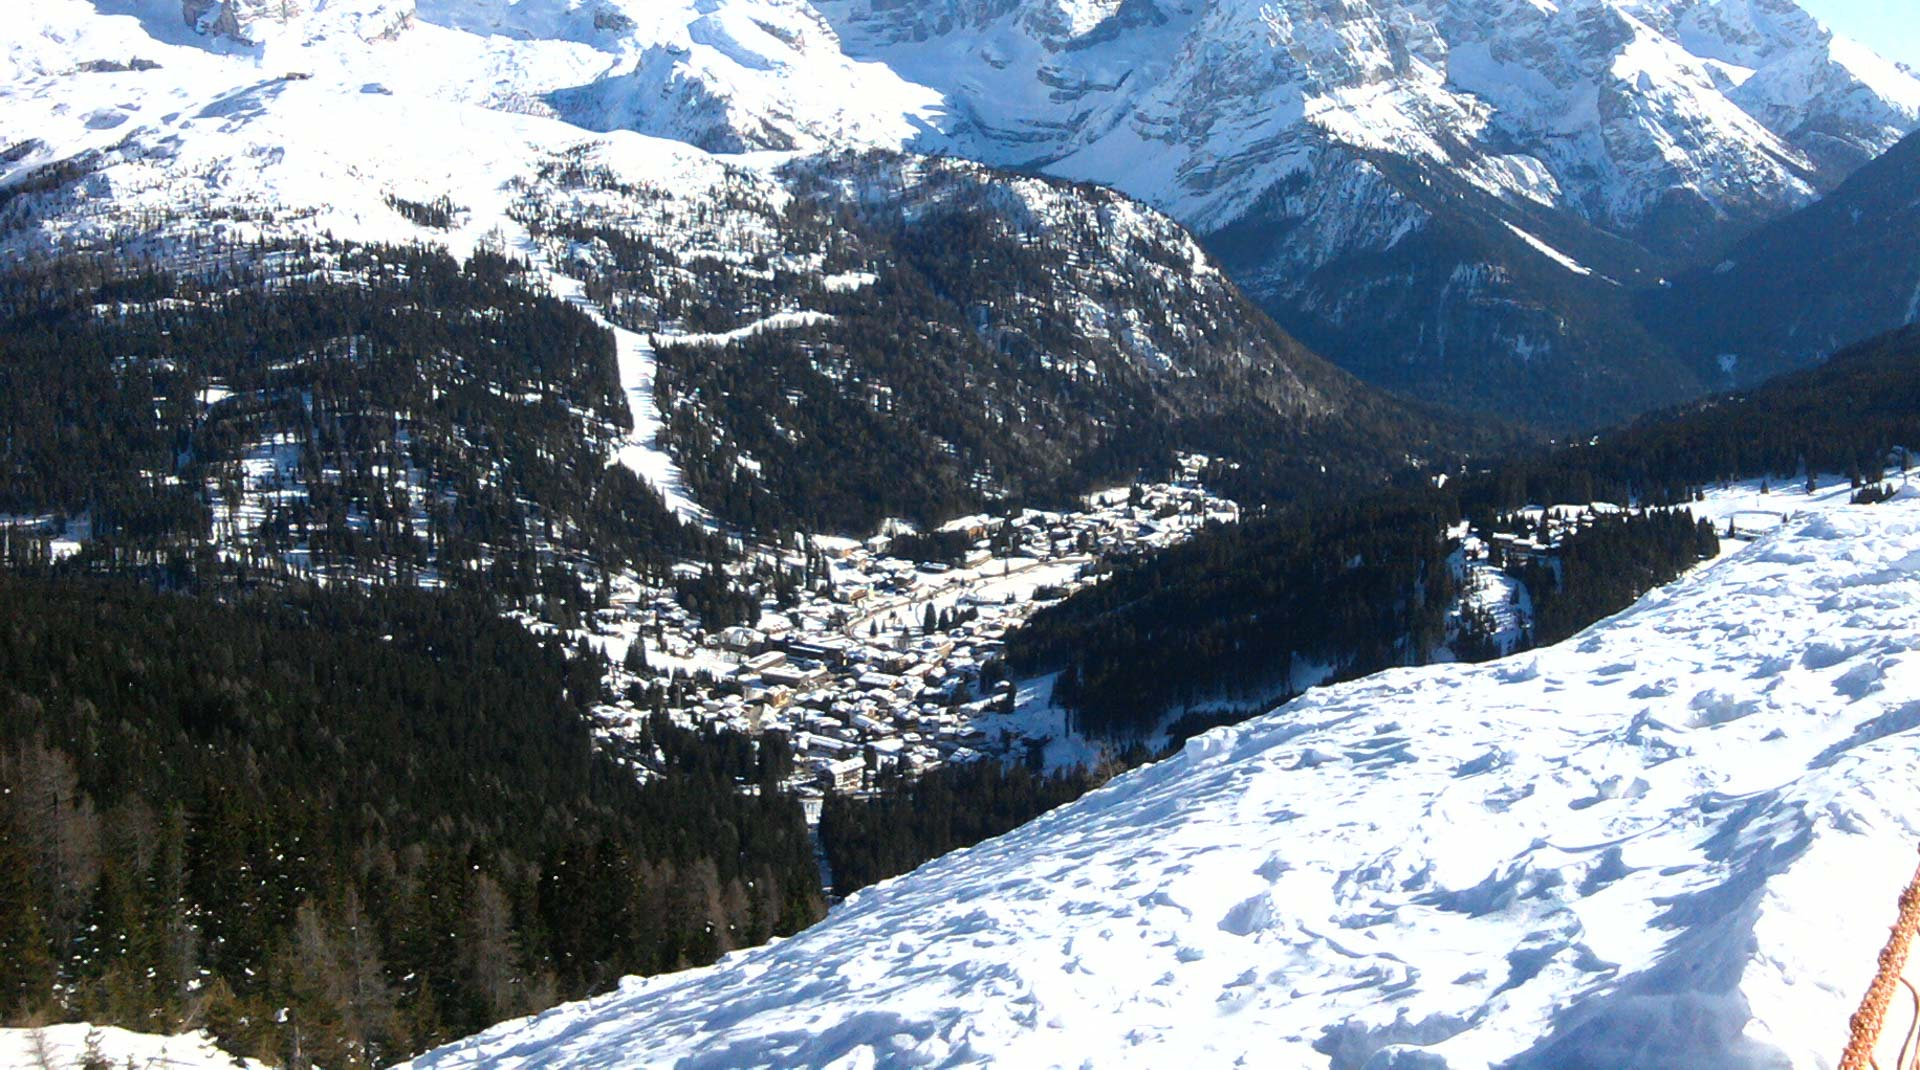 The ski resort of Madonna di Campiglio seen nestled in a valley of trees from the ski slopes above